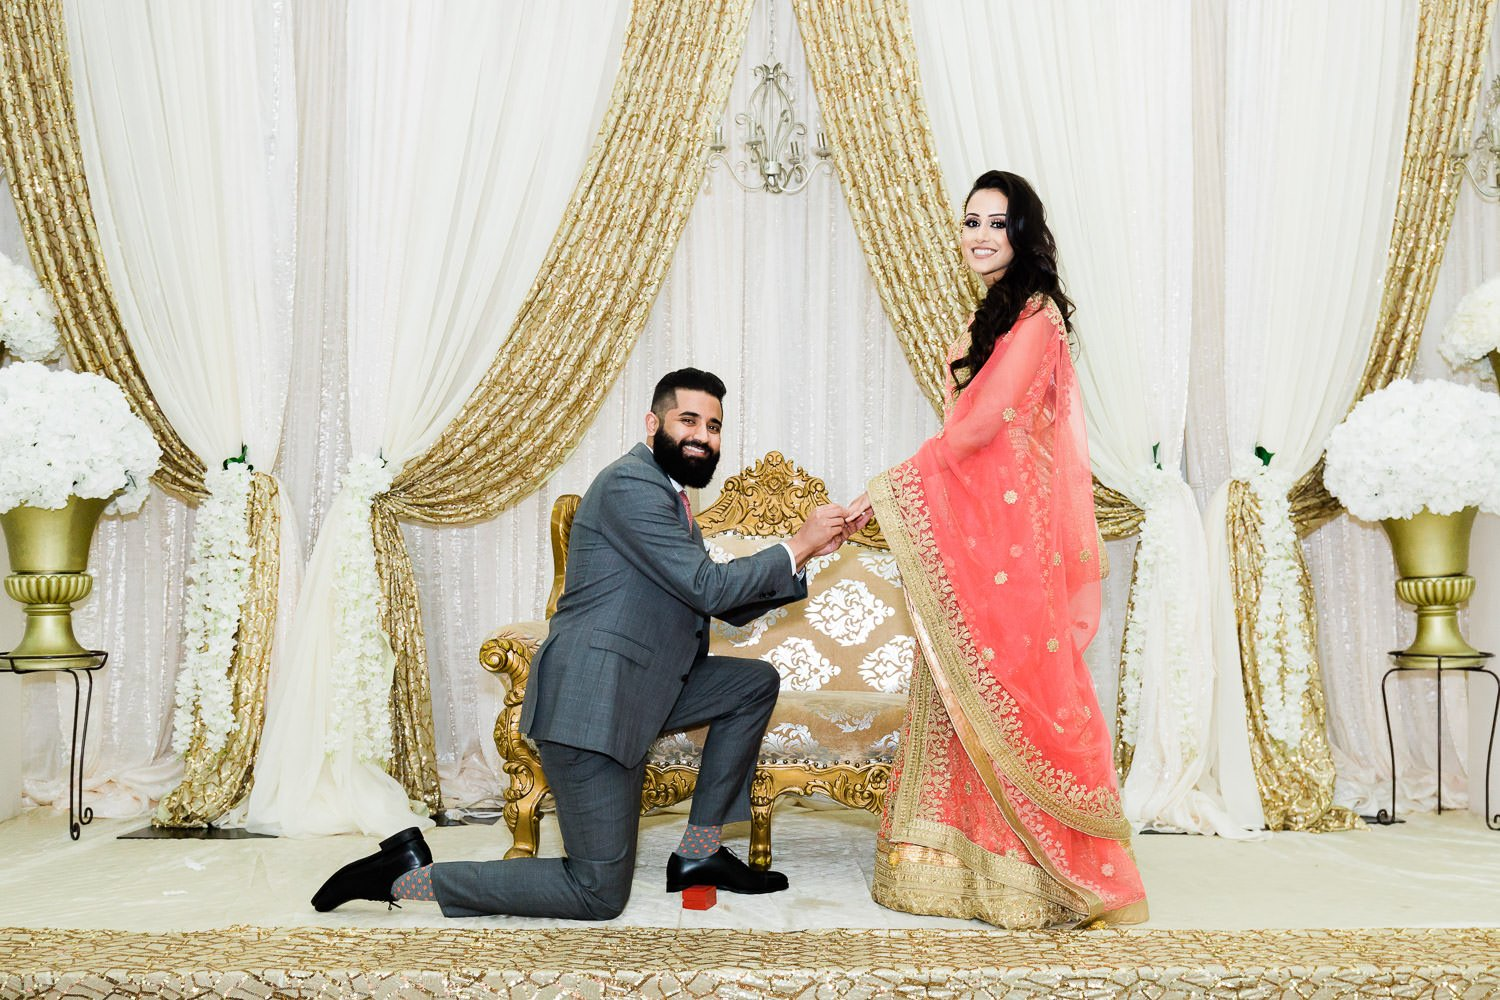 Indian couple getting engaged